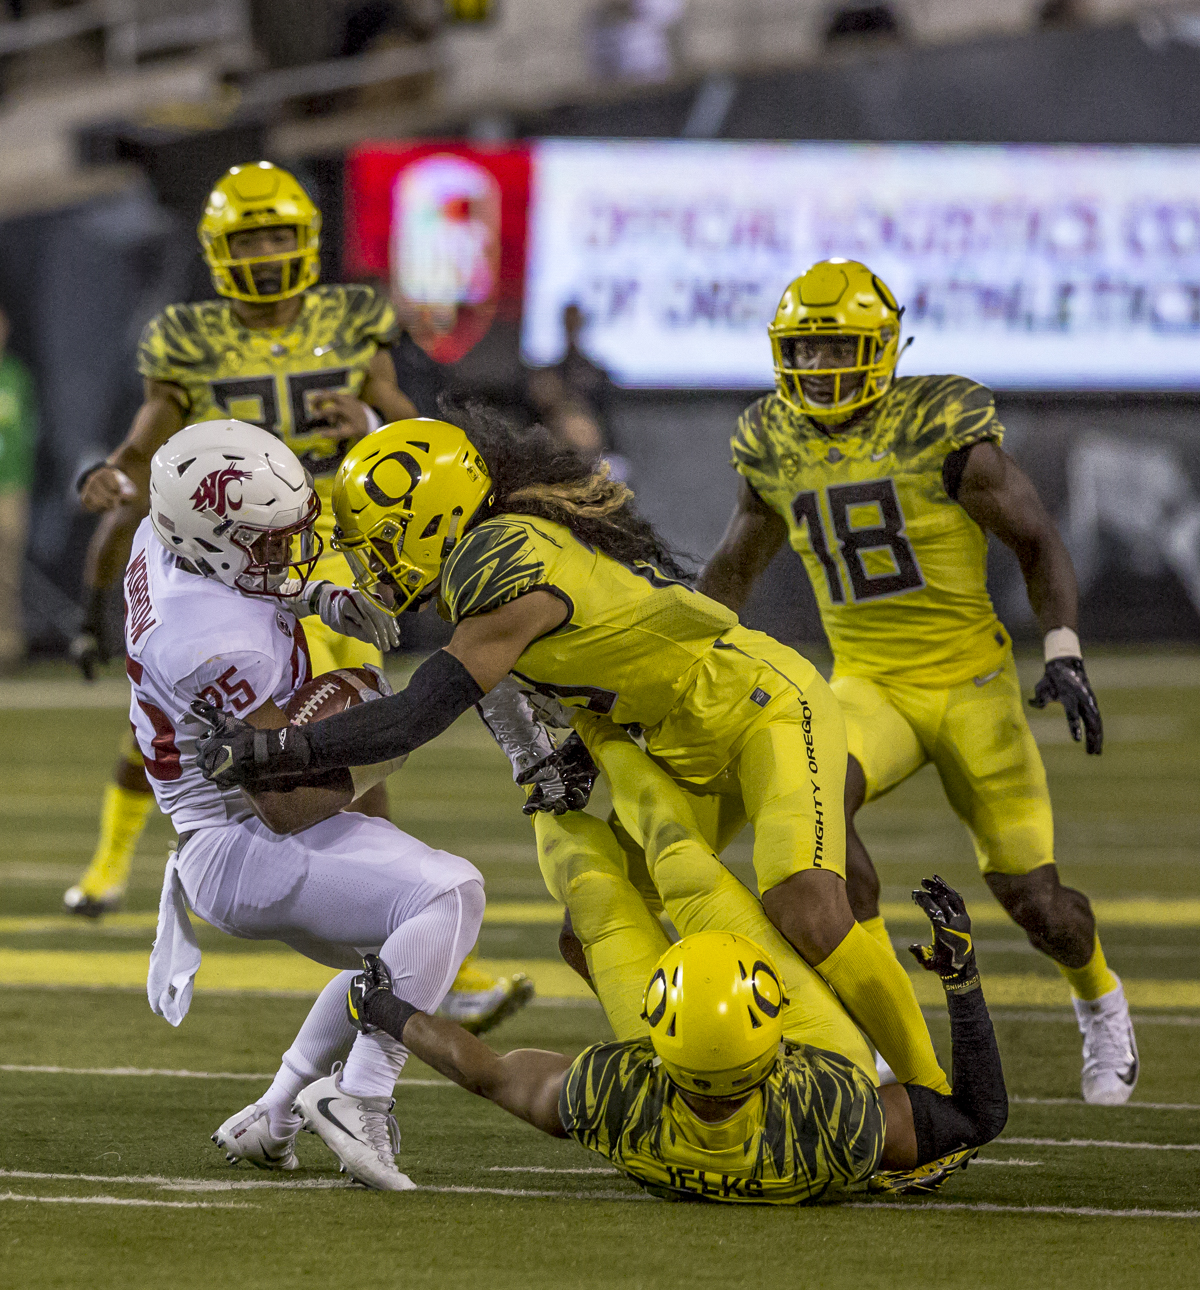 Oregon defensive player Fotu T. Leiato II tackles Washington State running back Jamal Morrow (#25). The Washington State Cougars defeated the Oregon Ducks 33 to 10 on Saturday, October 7, 2017. Saturday's game was the first home loss for the Ducks under new head coach Willie Taggart. Photo by Ben Lonergan, Oregon News Lab